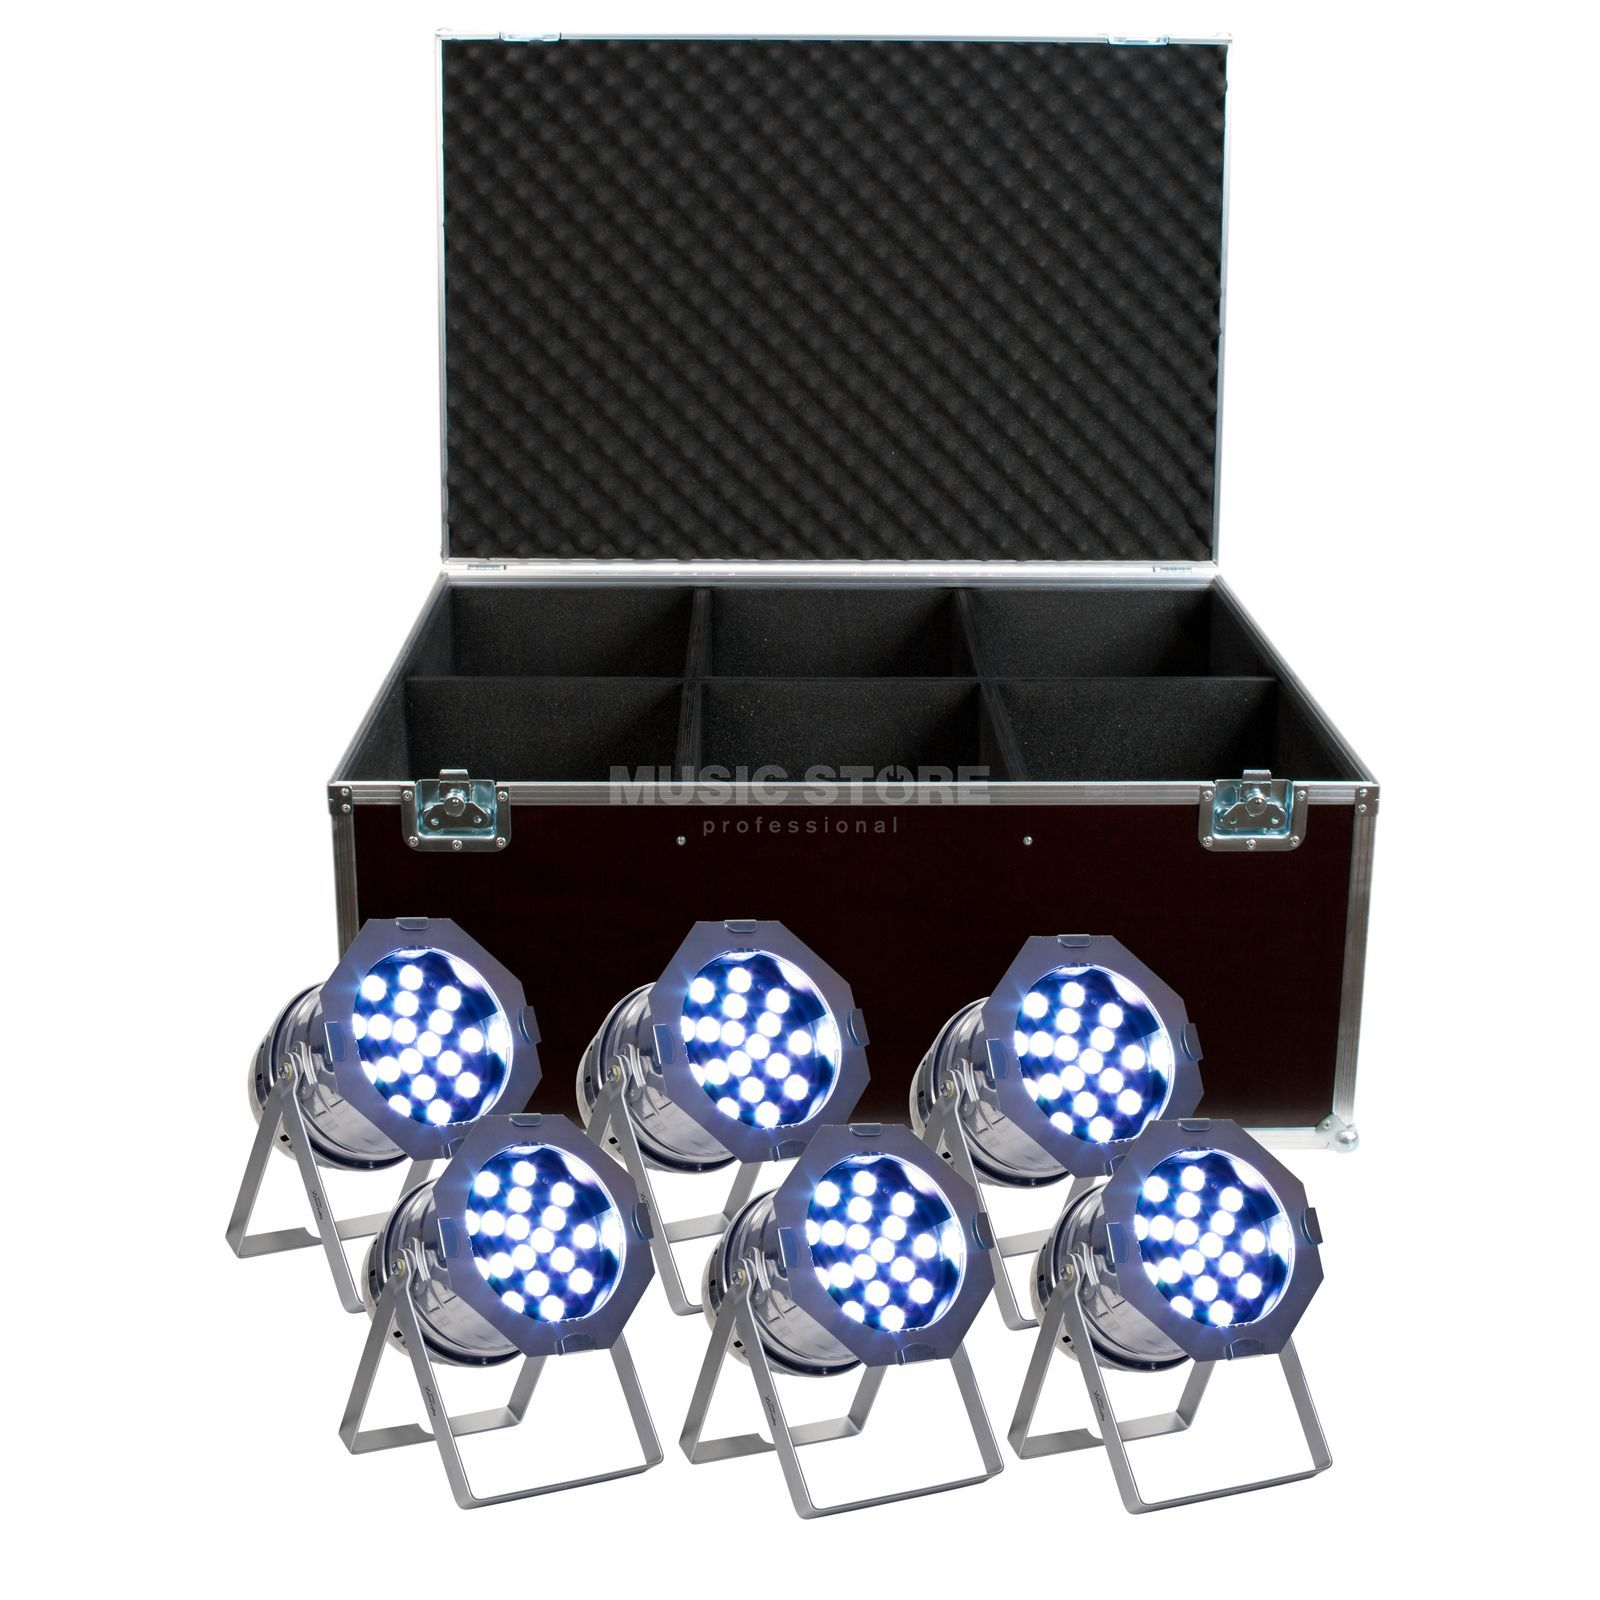 SET LightmaXX LED PAR 64 Tri-LED Polish (6x), inkl. Case Produktbillede